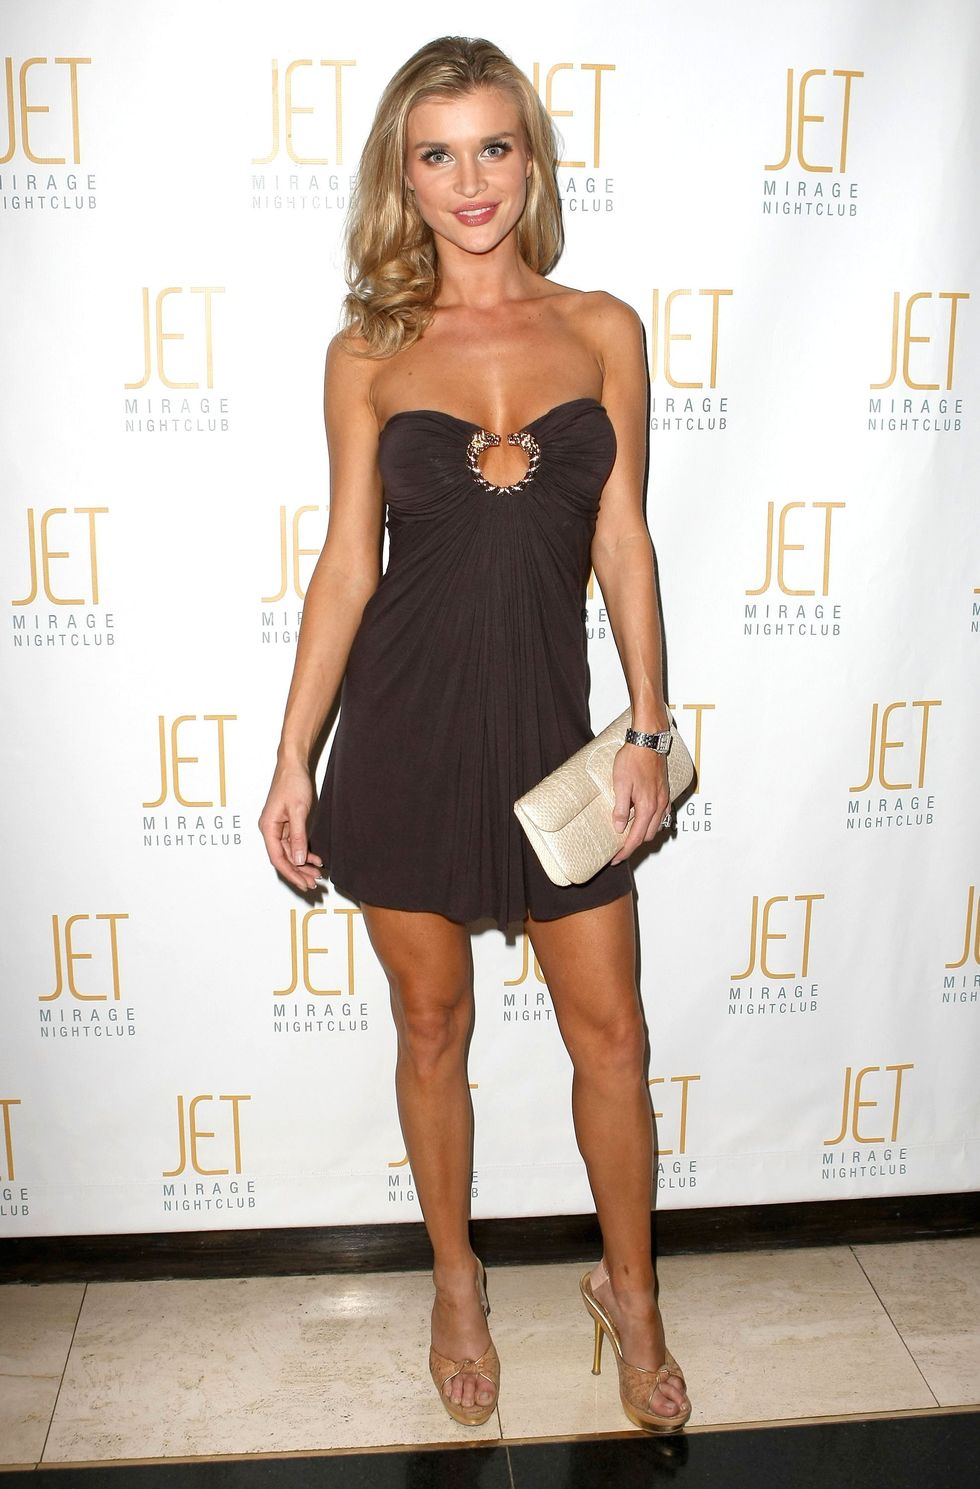 joanna-krupa-hosting-friday-night-at-jet-nightclub-in-las-vegas-01